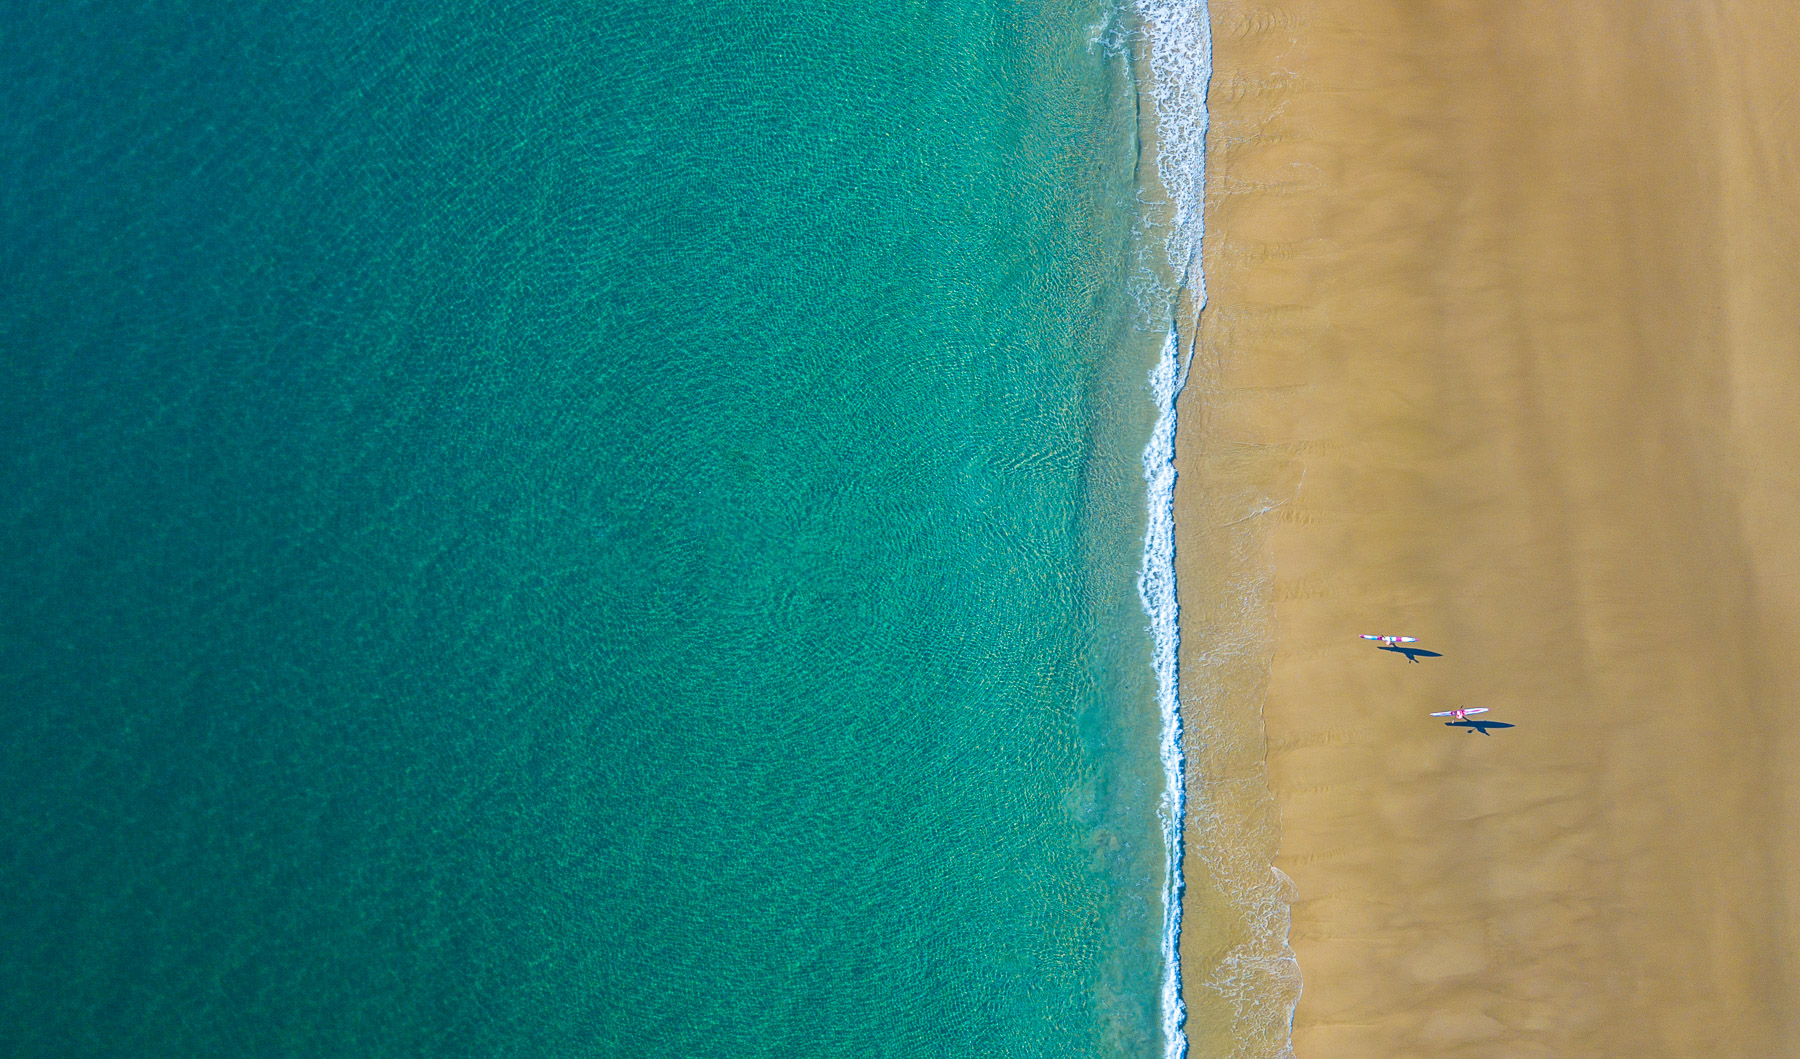 Aerial drone active lifestyle photo of two surfers walking into the water in Byron Bay, Australia.